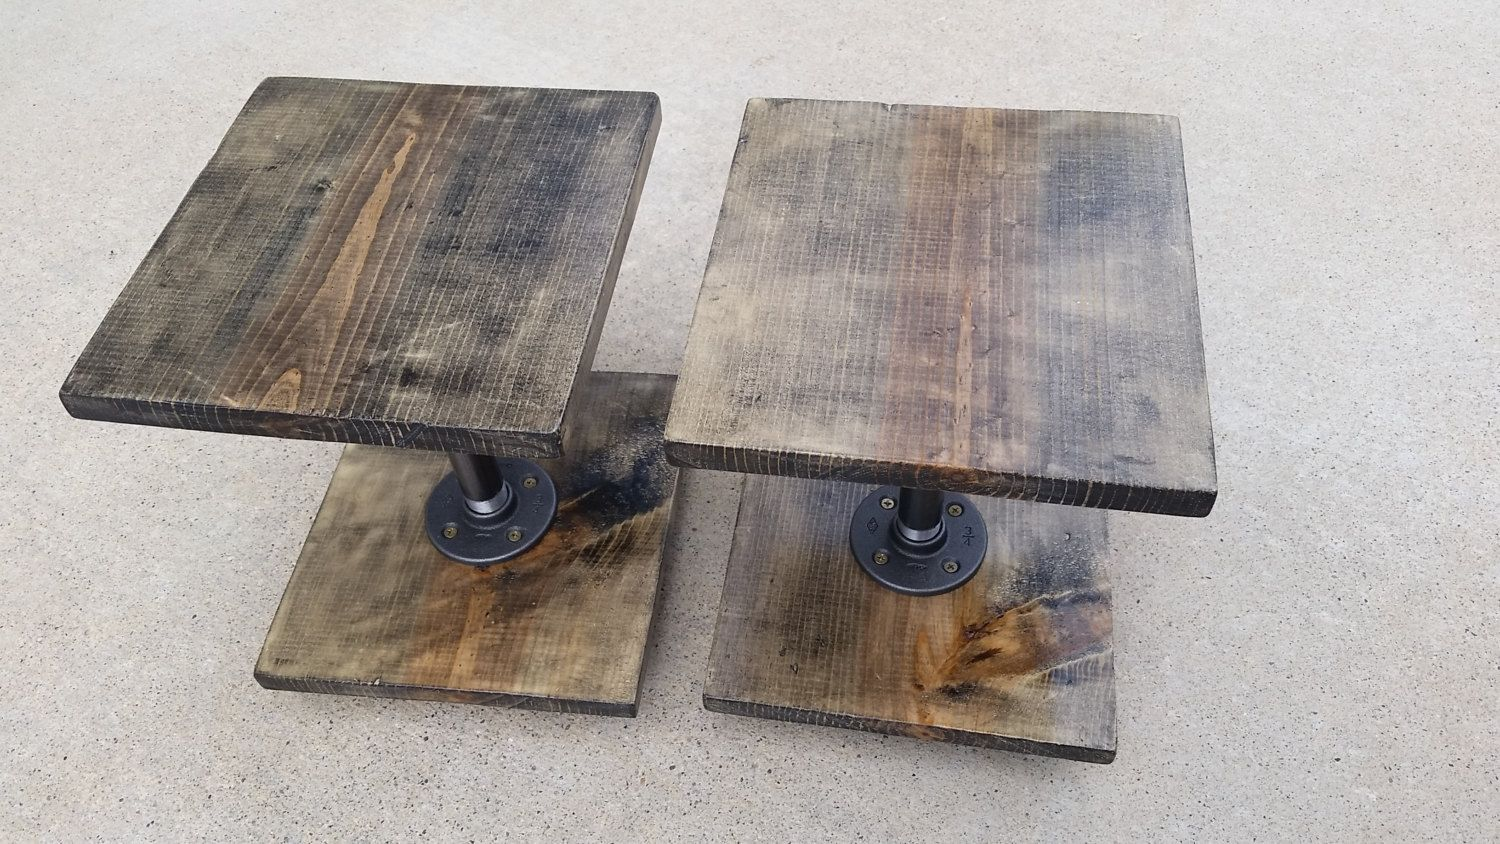 Custom stained wood speaker stands, large monitor speakers